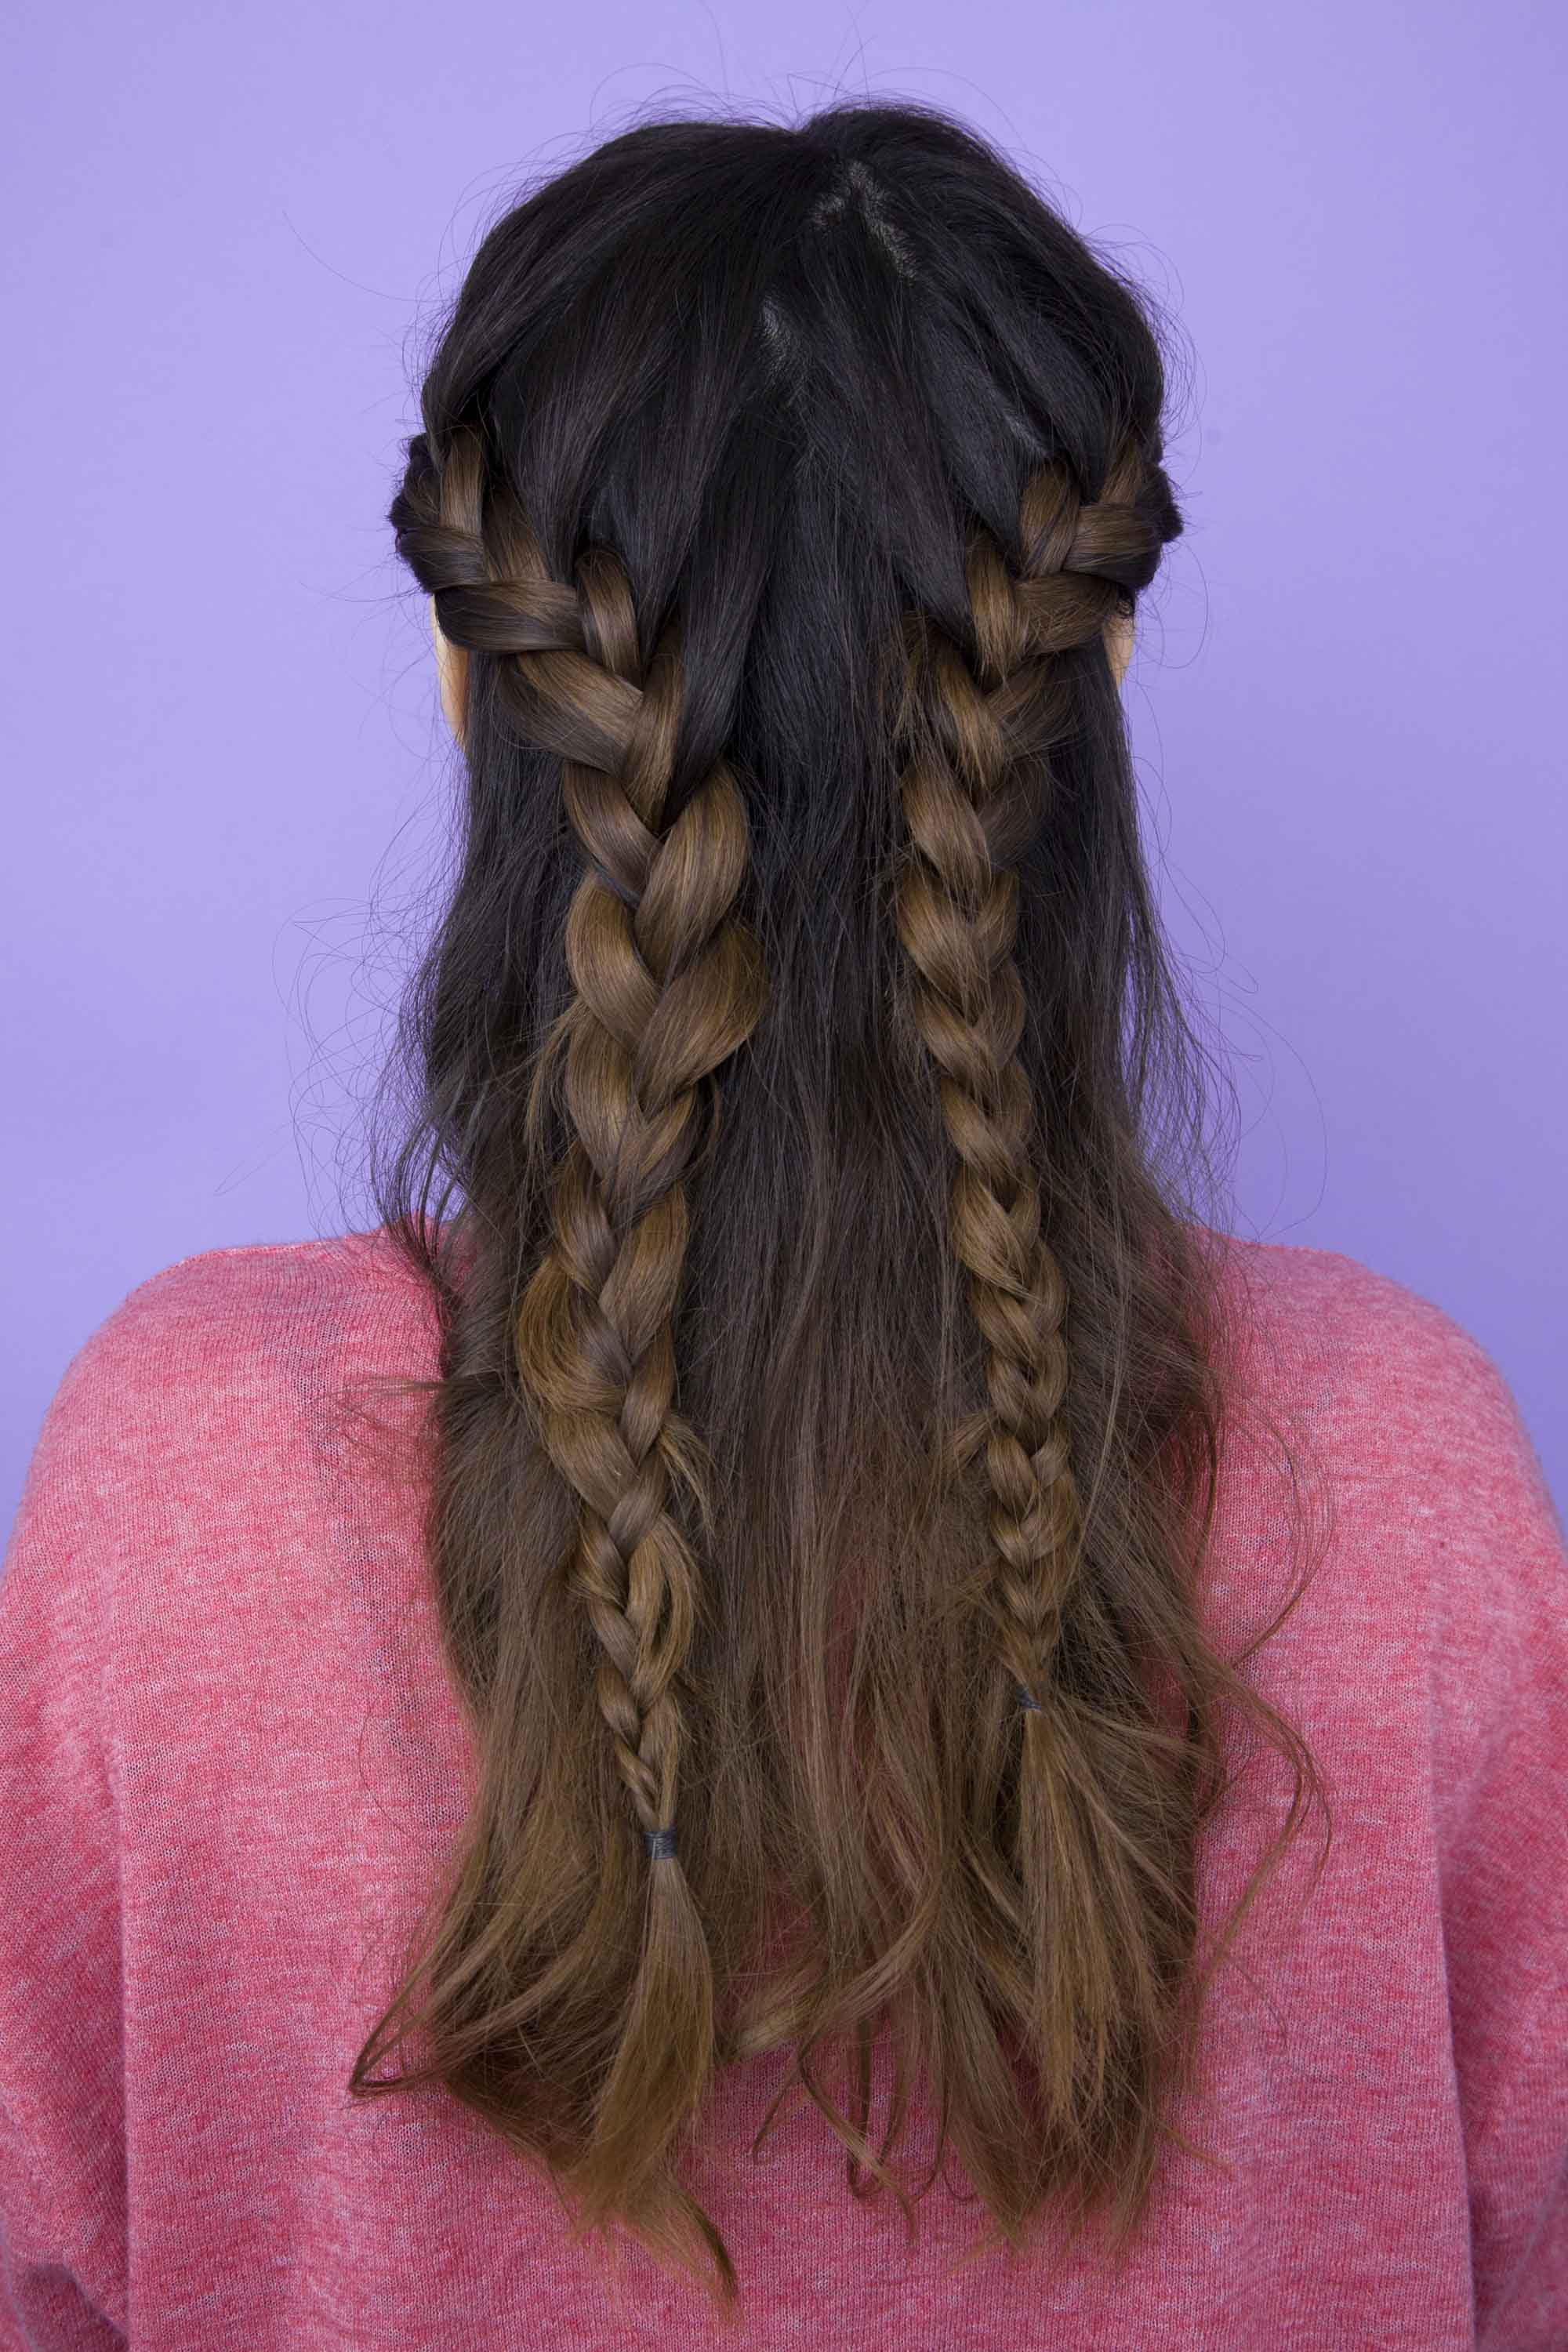 Hippie Hairstyles: 14 Simple and Fun Styles to Fall in Love With